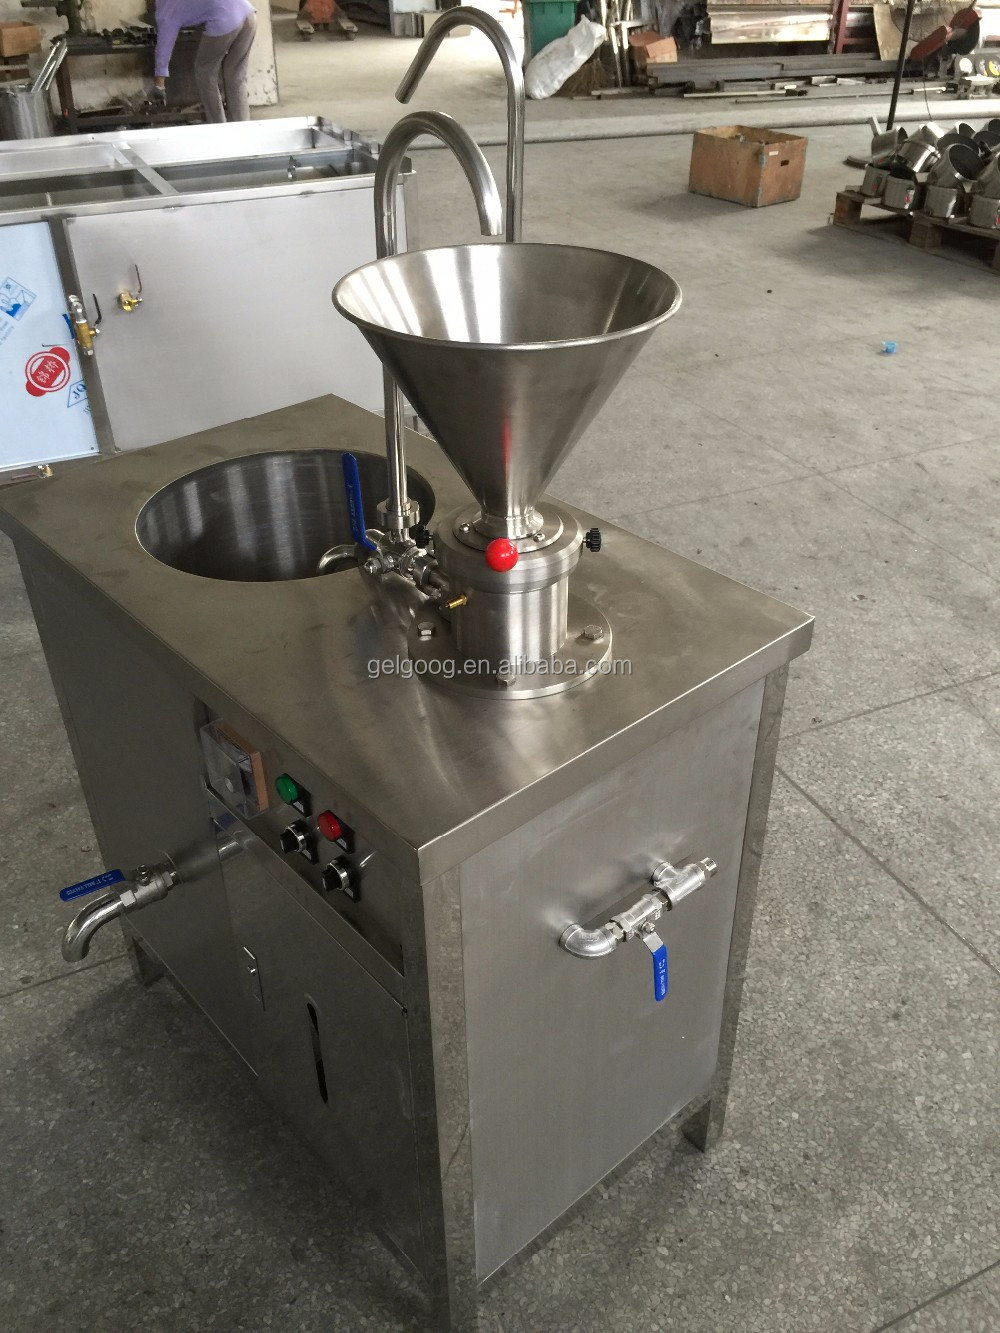 nut grinder machine